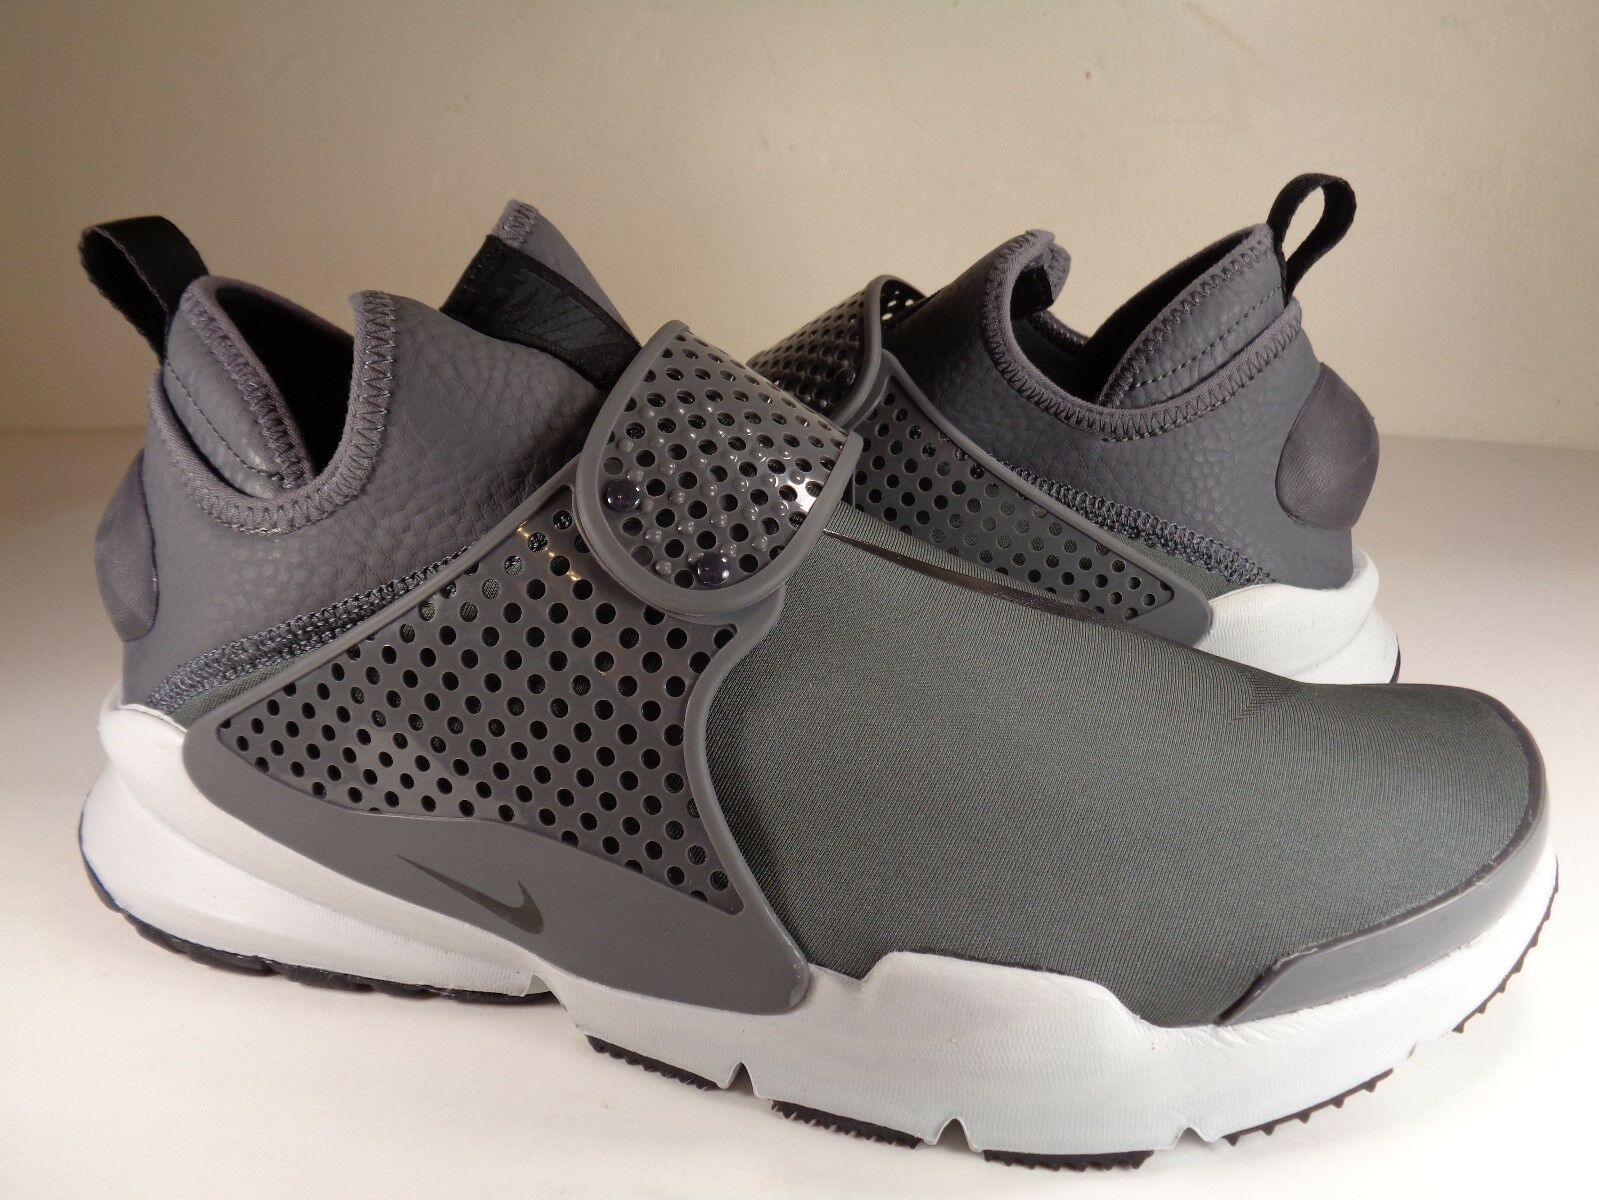 Nike Sock Dart Mid SE Dark Grey Light Grey Black Anthracite SZ 9 (924454-003)